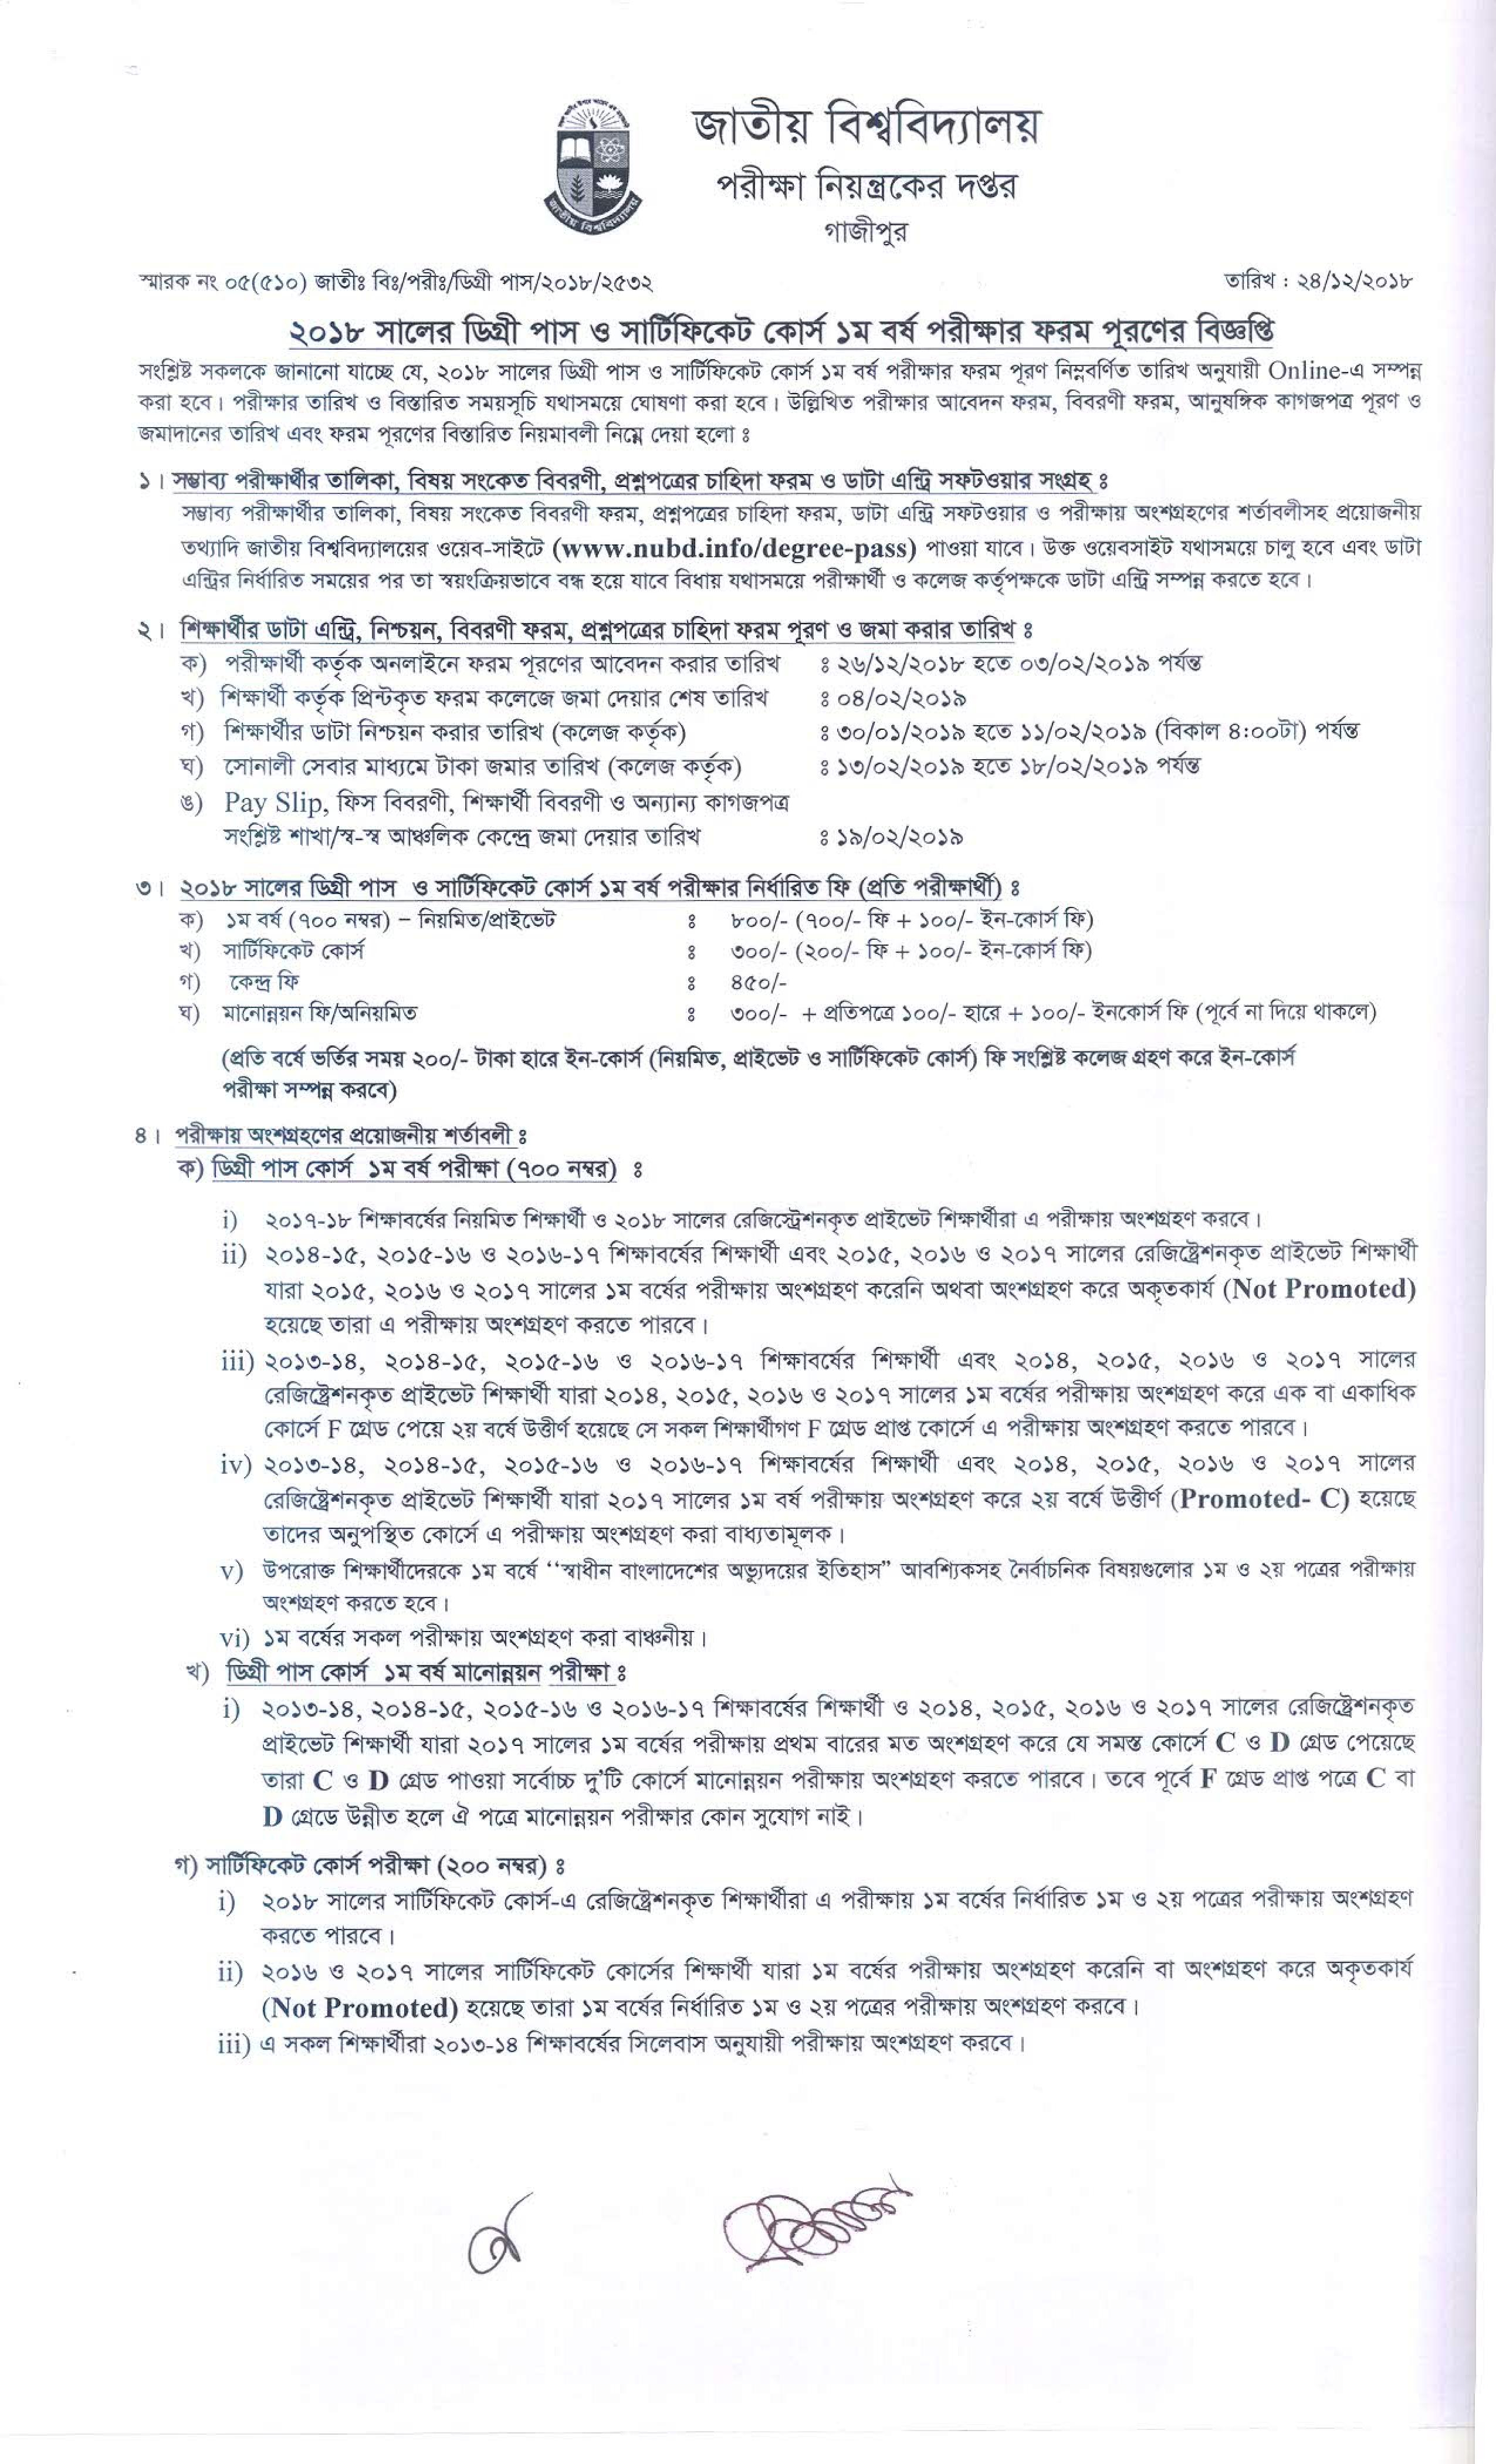 NU Degree 1st Year Form Fill Up Notice 2018